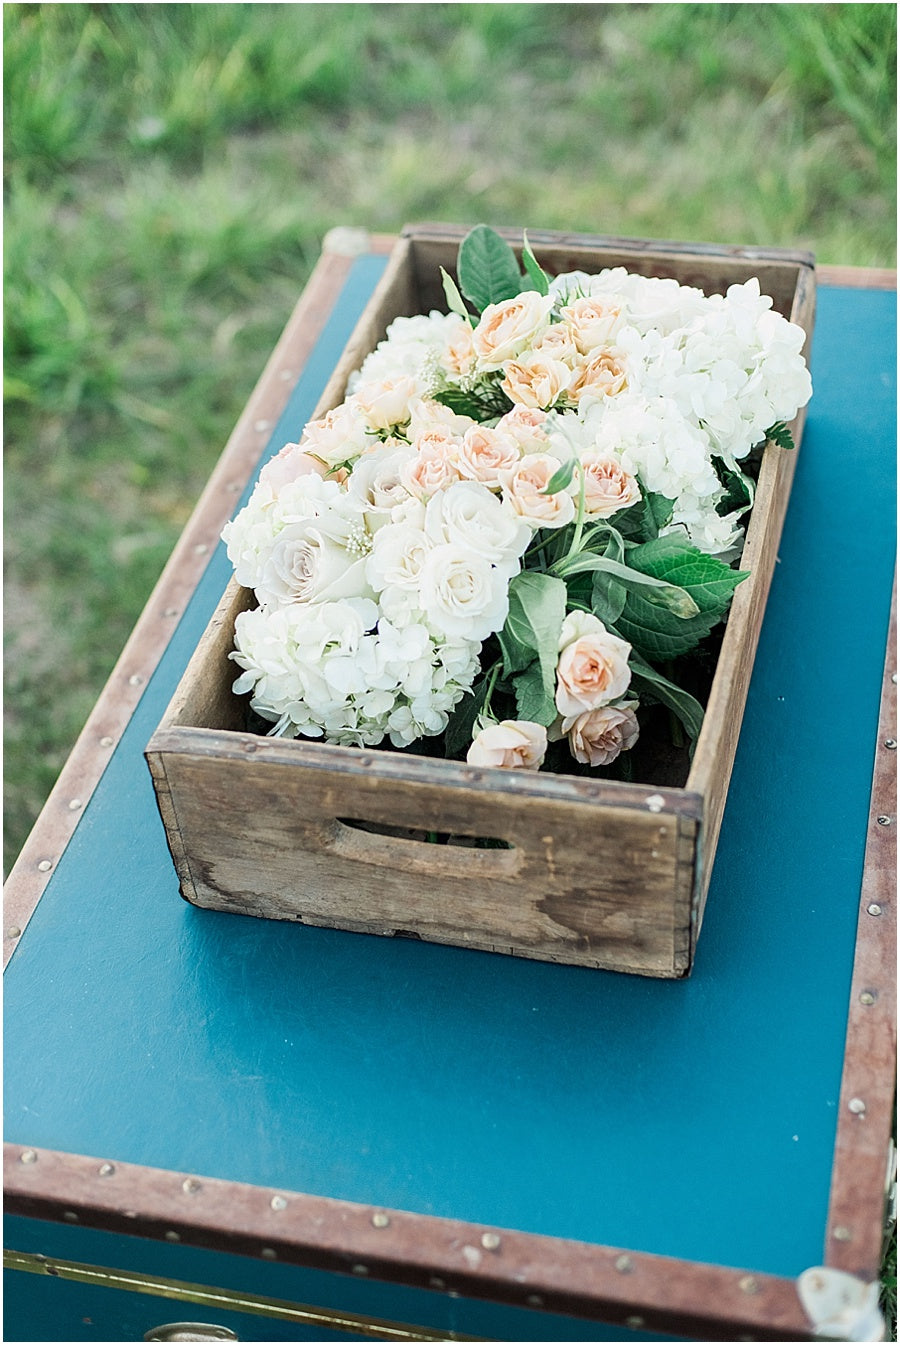 leah adkins photography // little miss lovely floral design // vintage wooden crate filled with flowers